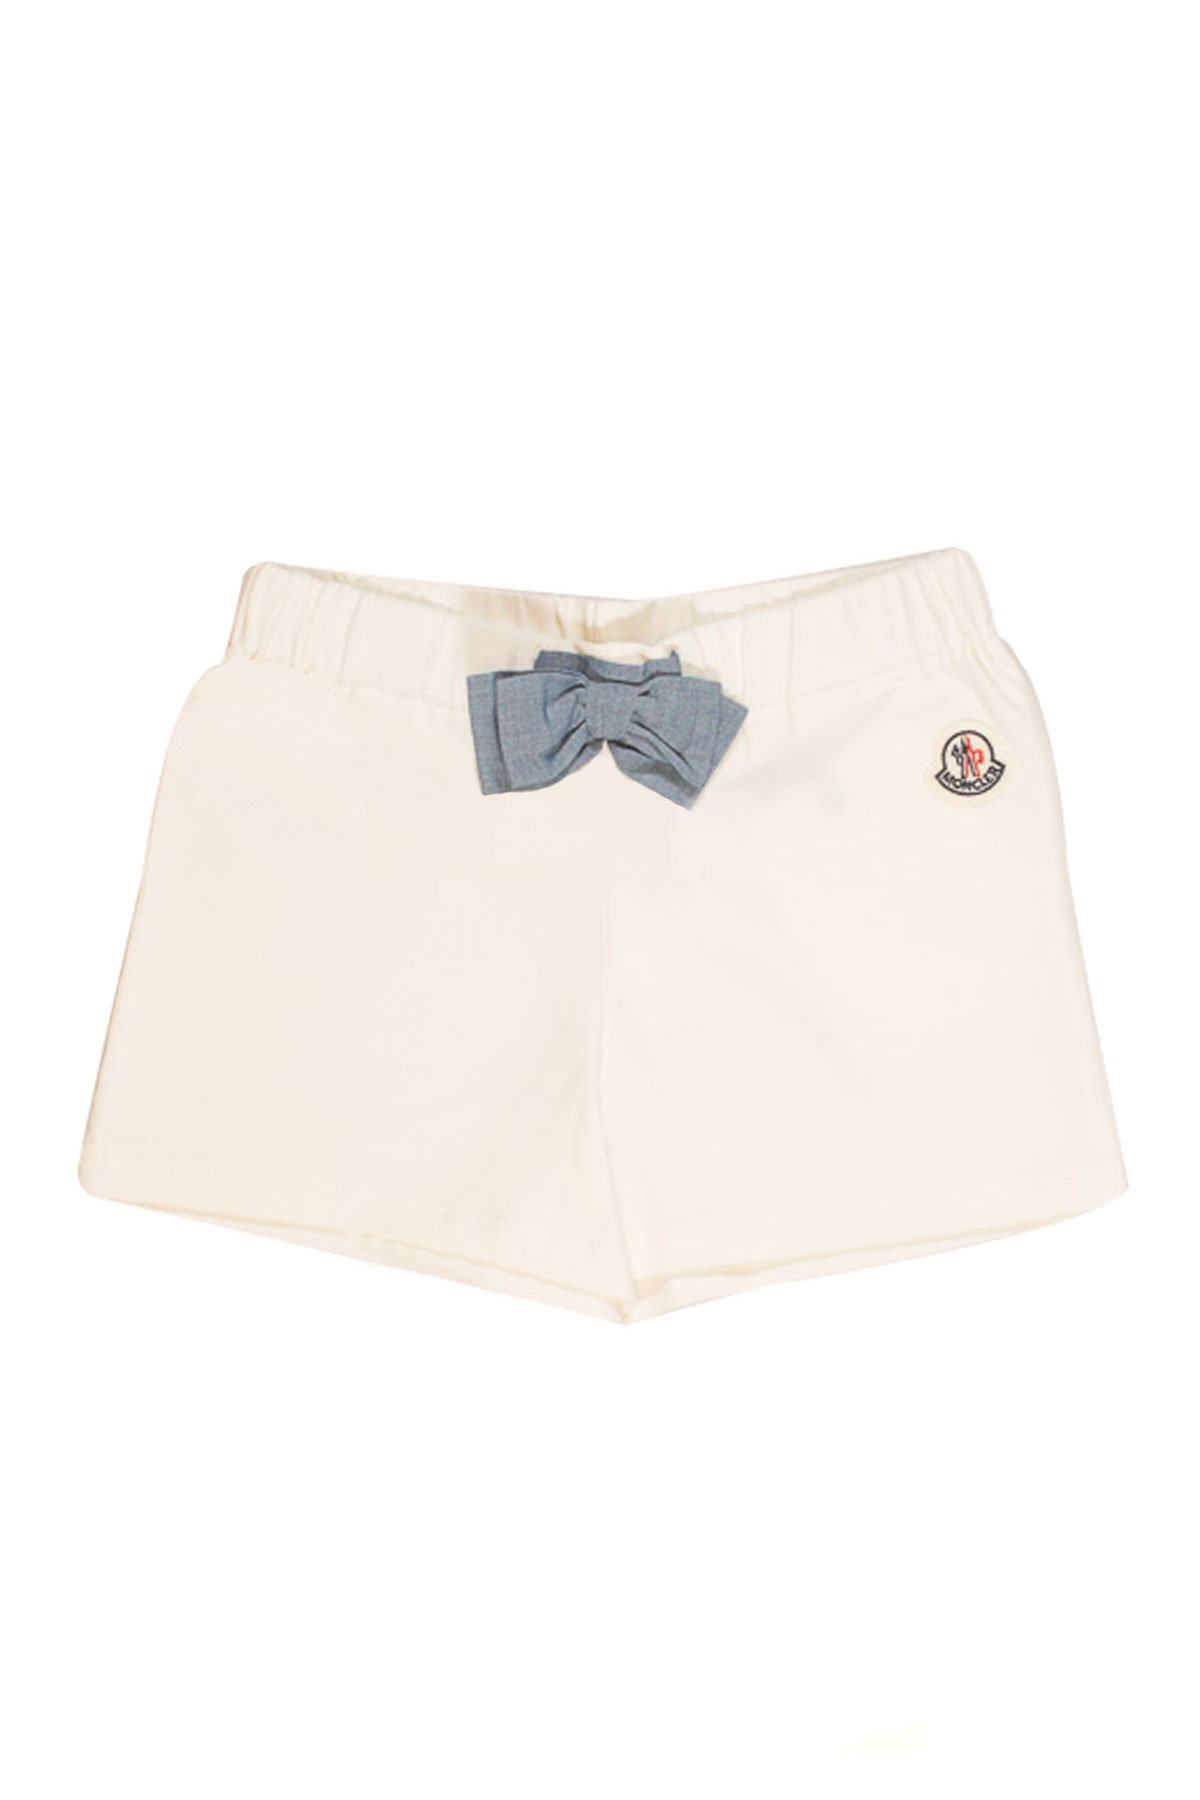 ... WHITE SHORTS WITH FRONTAL LOGO AND BLUE BOW Moncler | 30 | 87575058790A034 ...